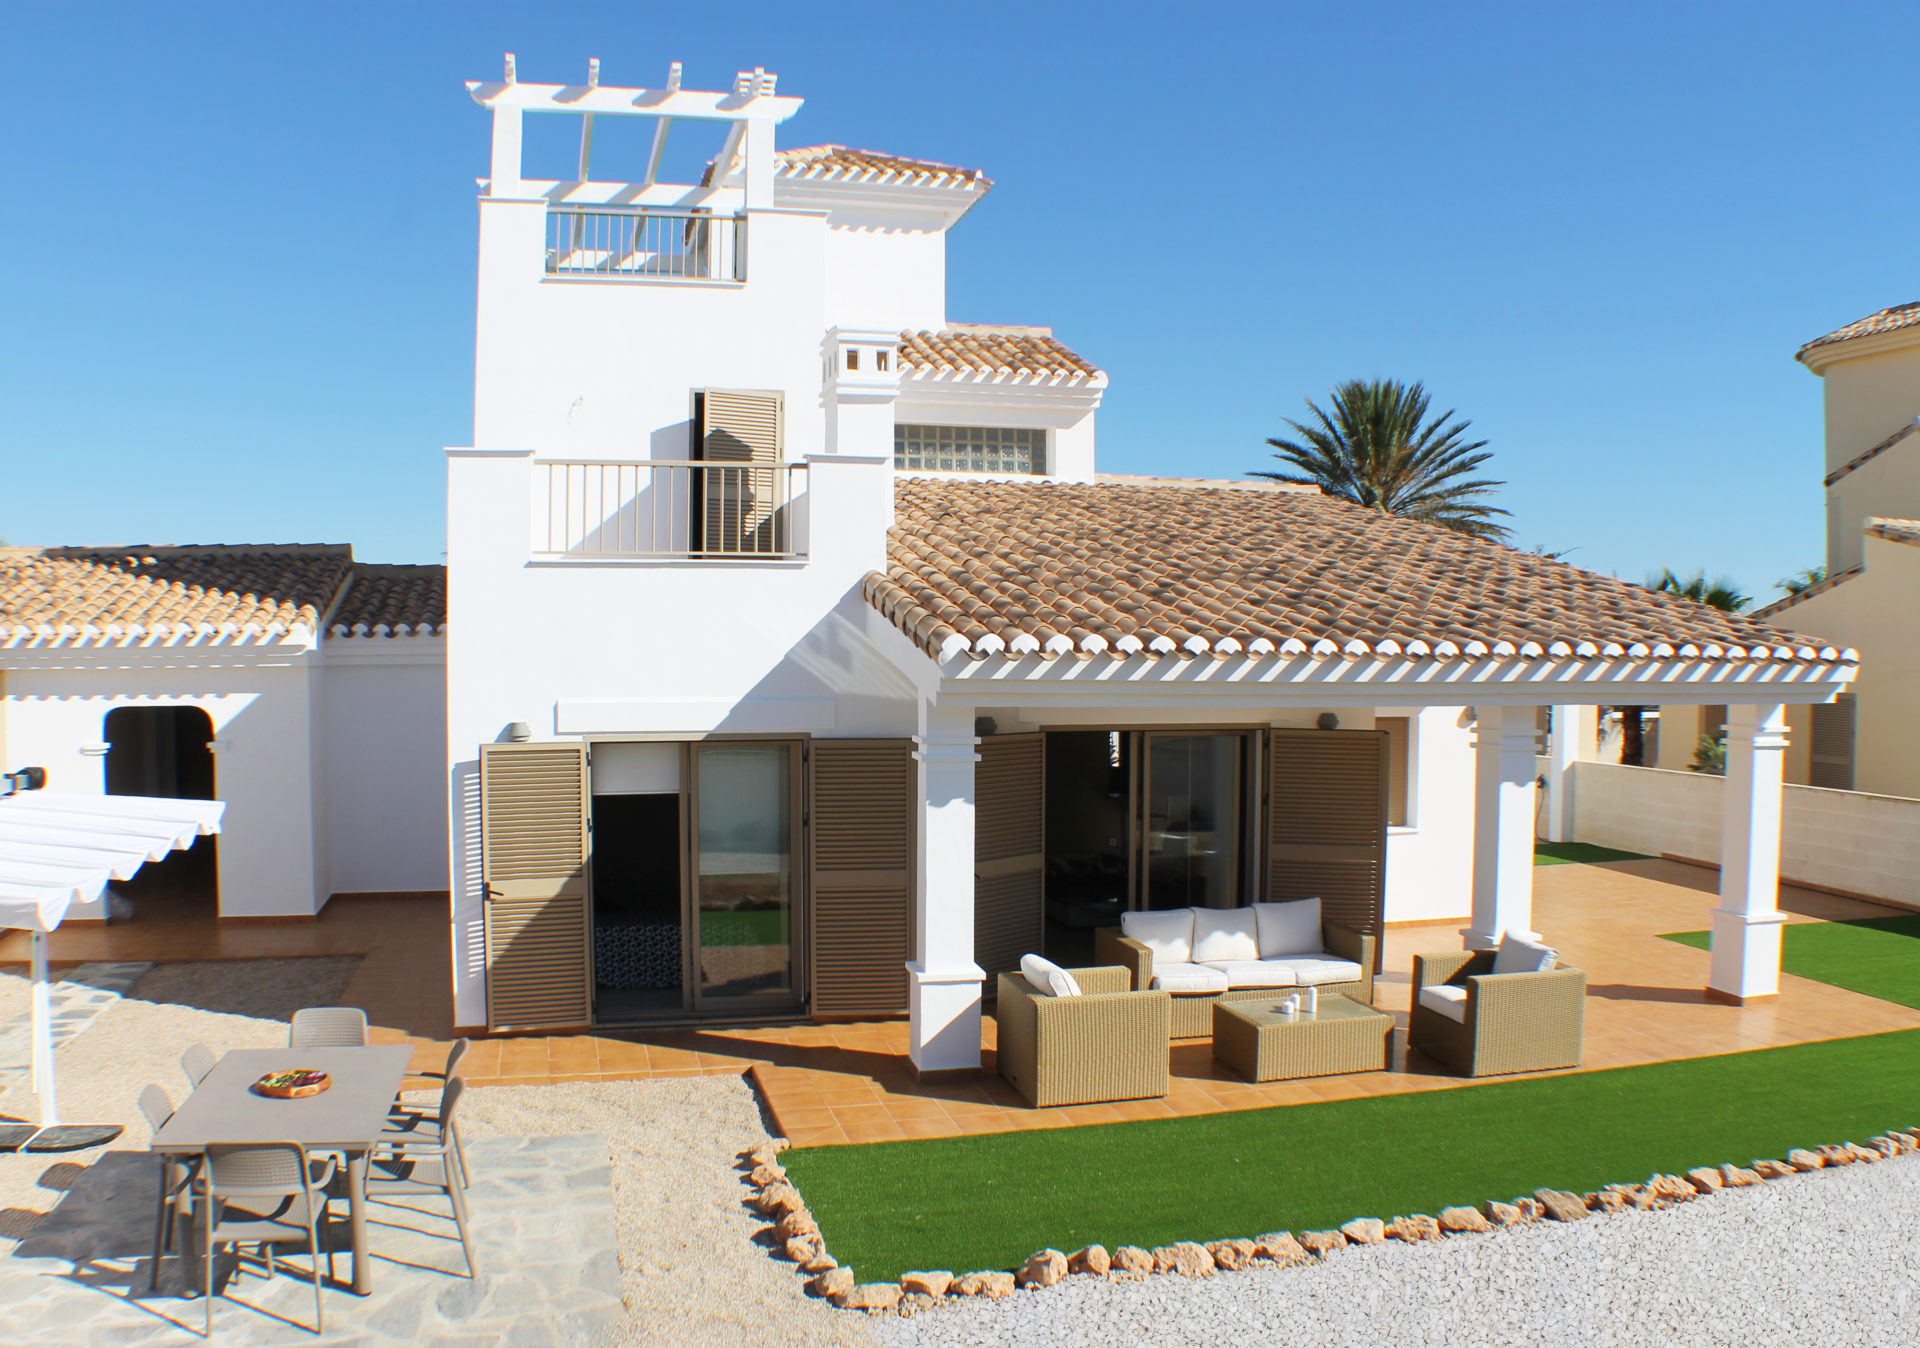 8 Only Magnificent Key Ready Detached Villas with Garage La Manga